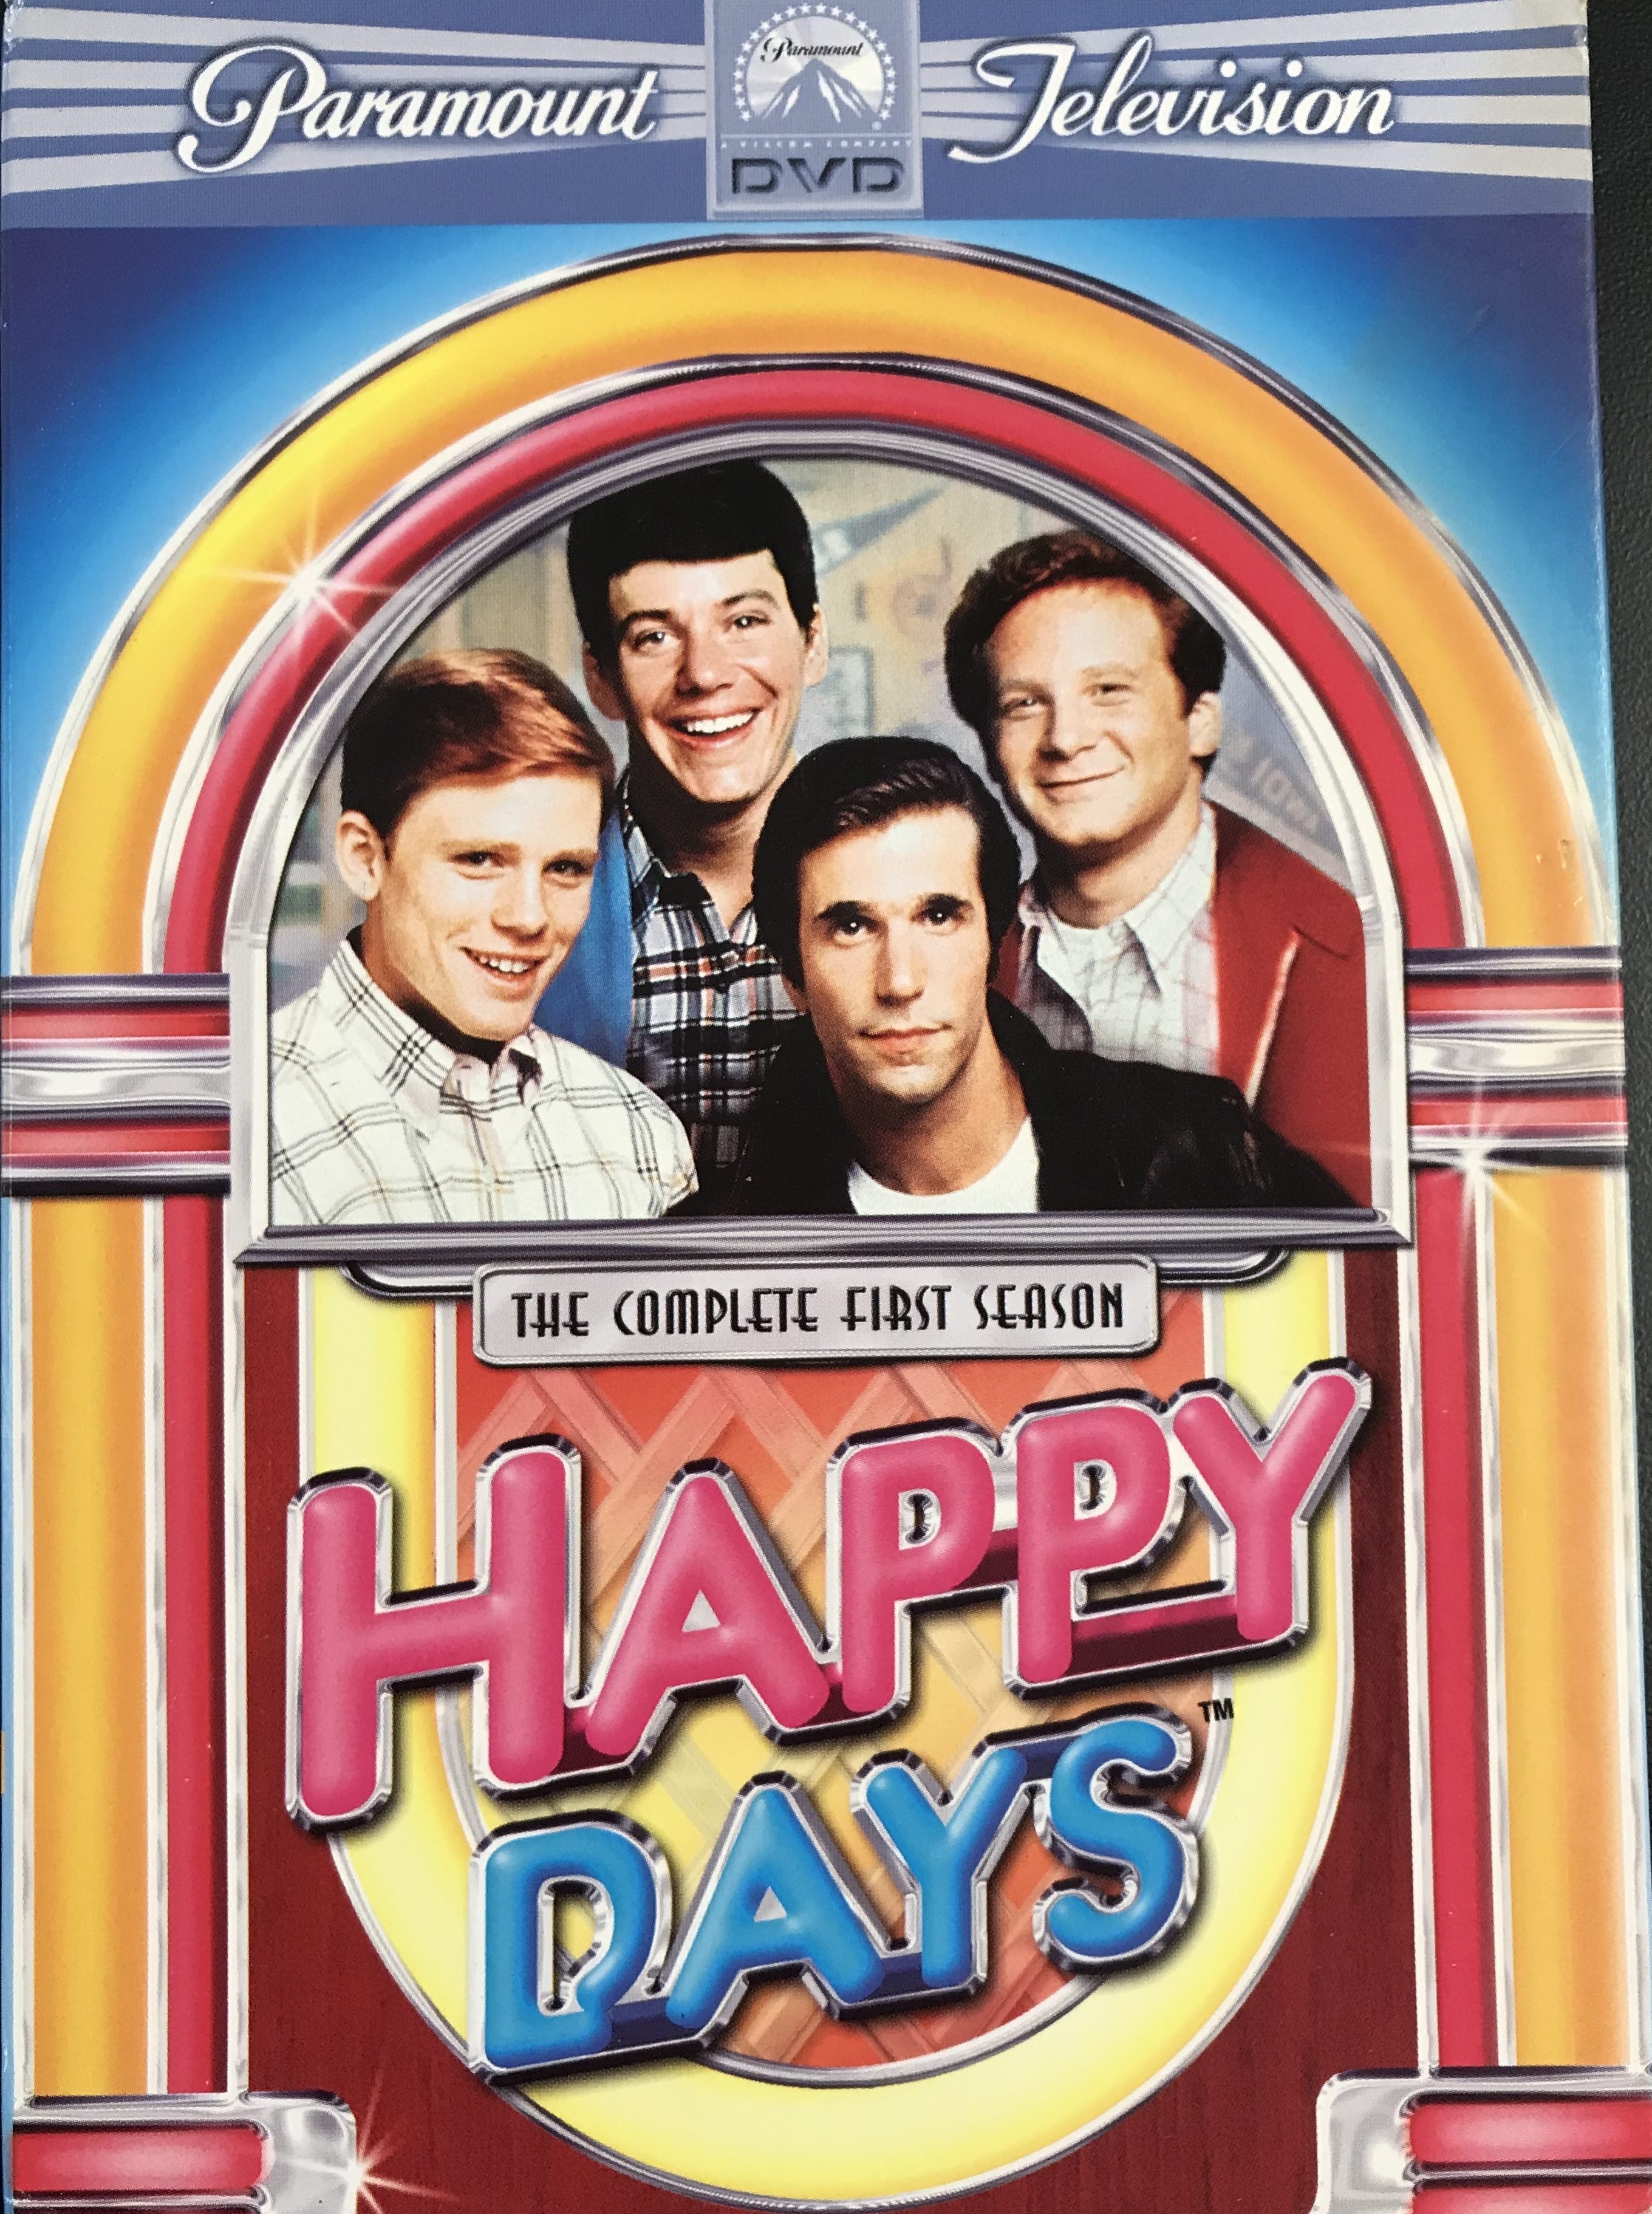 HAPPY DAYS: THE COMPLETE FIRST SEASON - DVD BOX SET